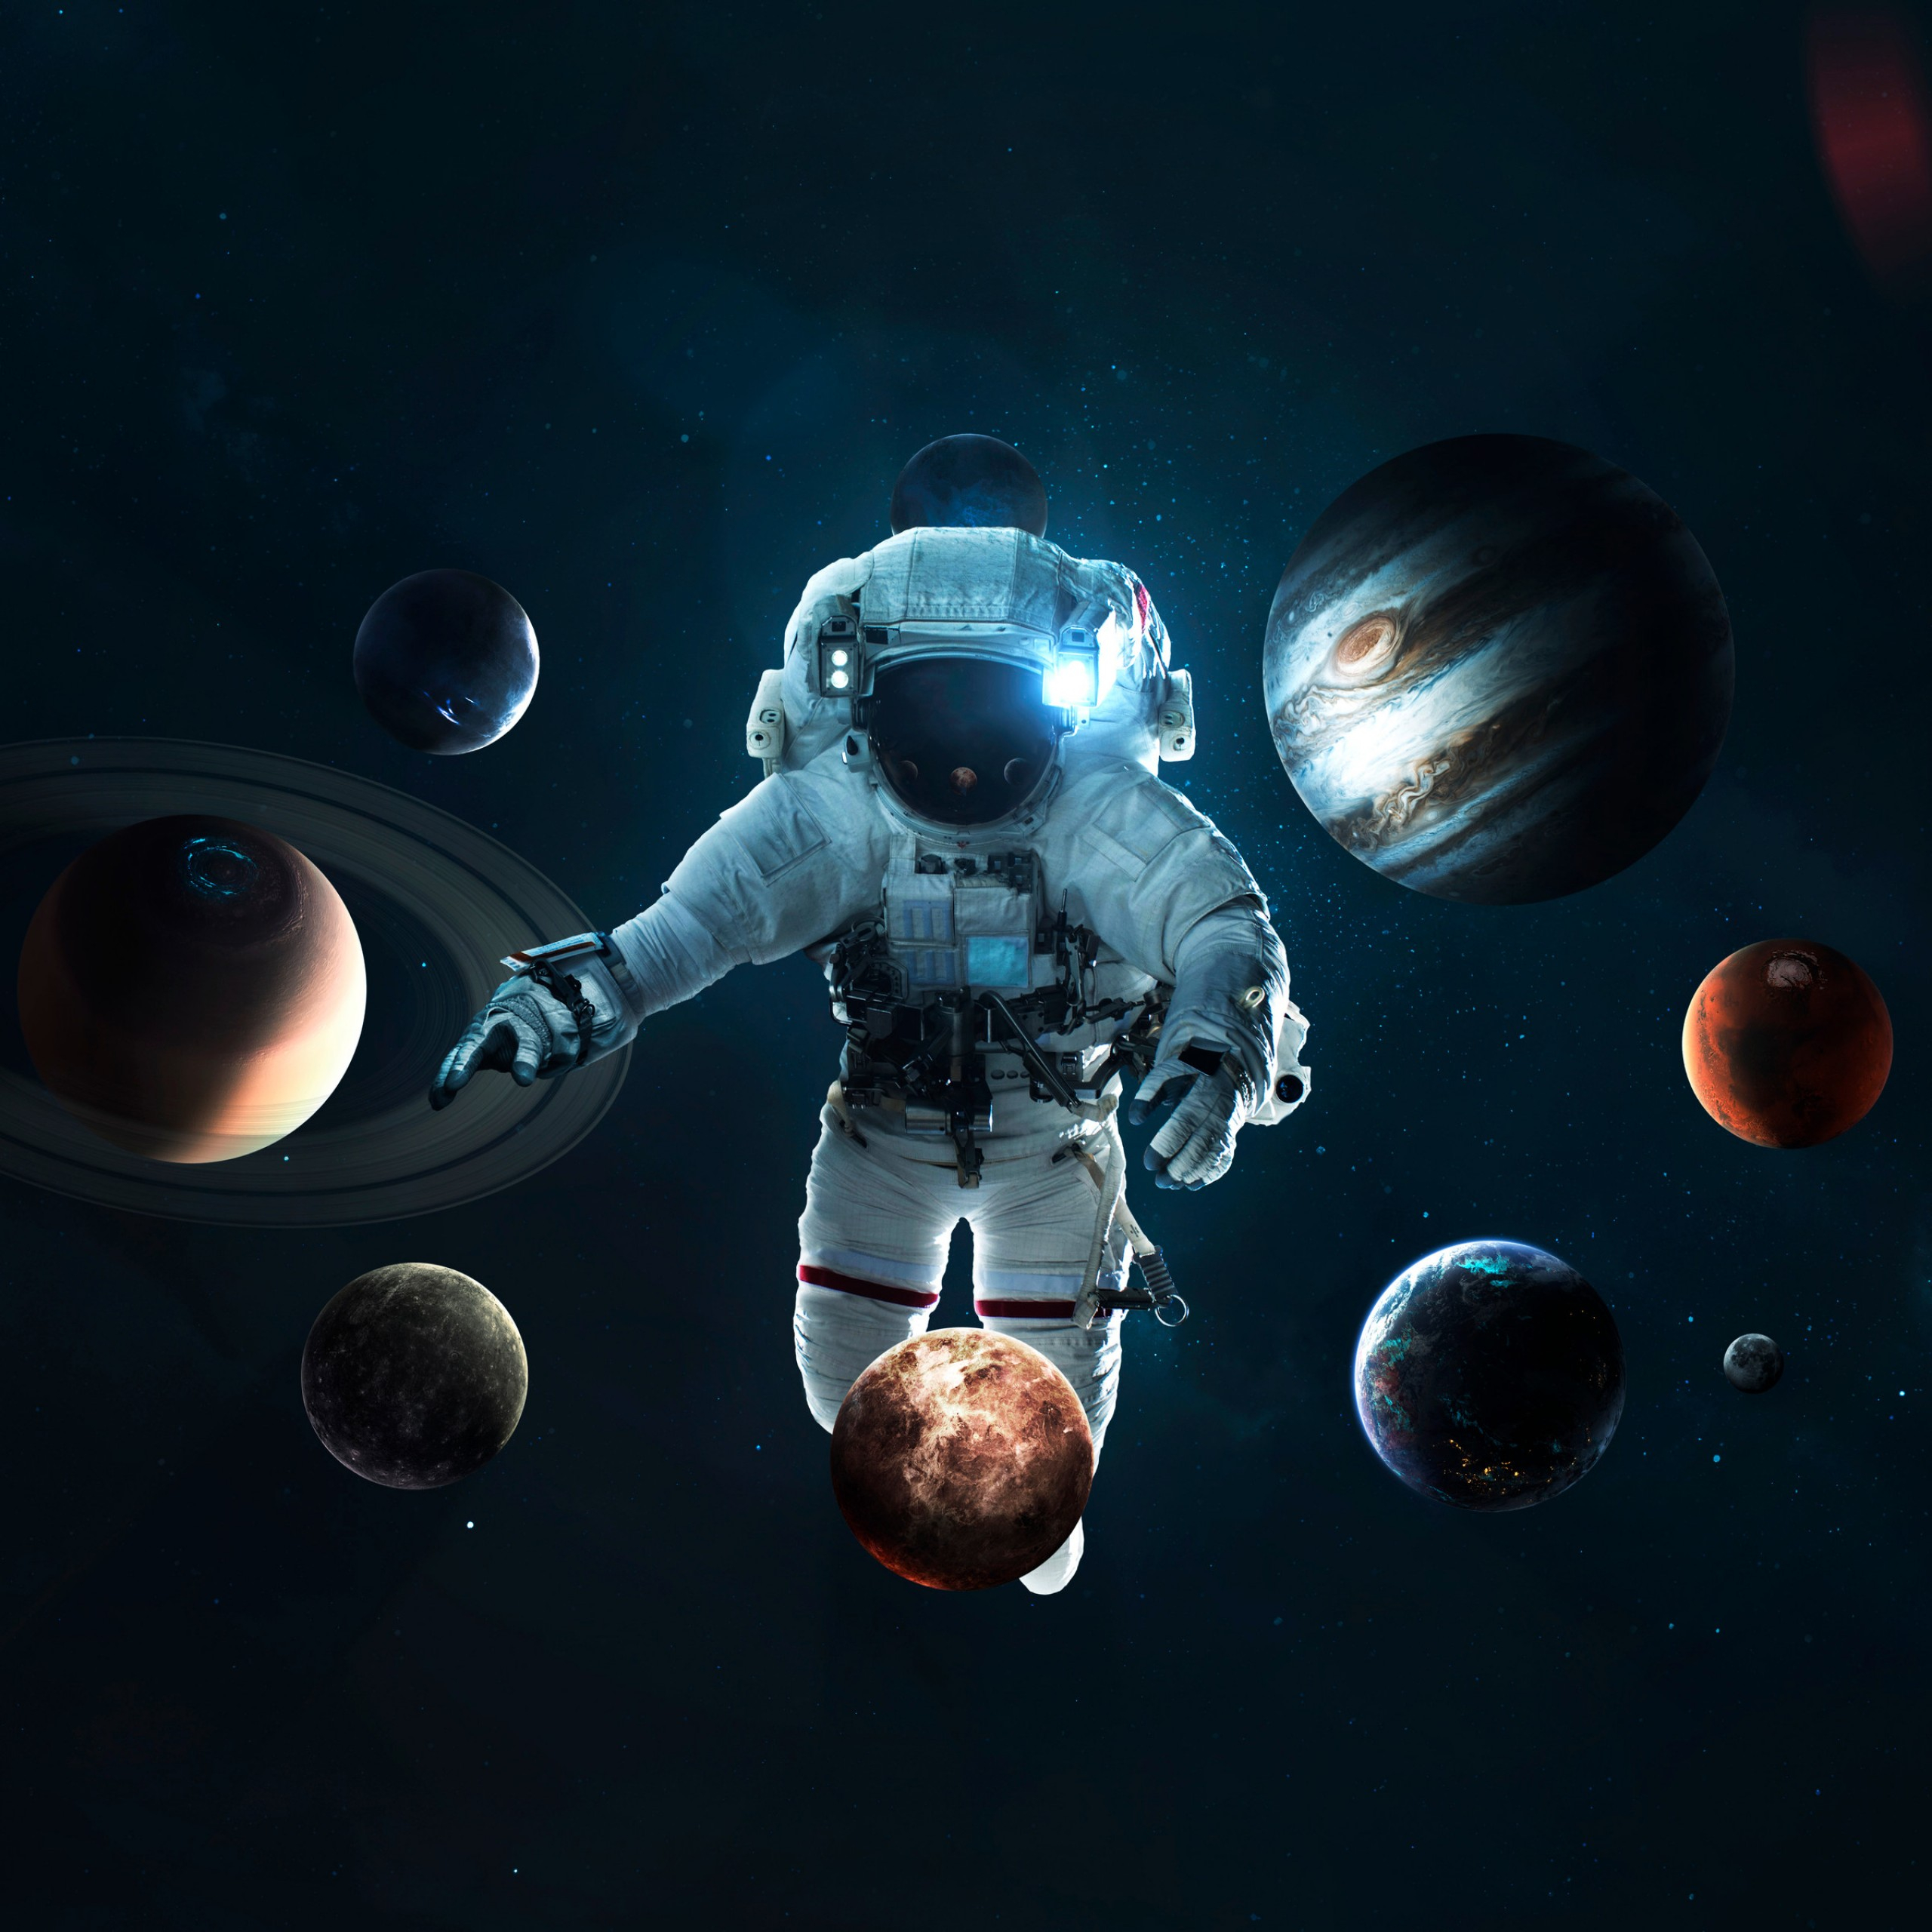 astronaut planetary system space suit space travel stars 2560x2560 2465